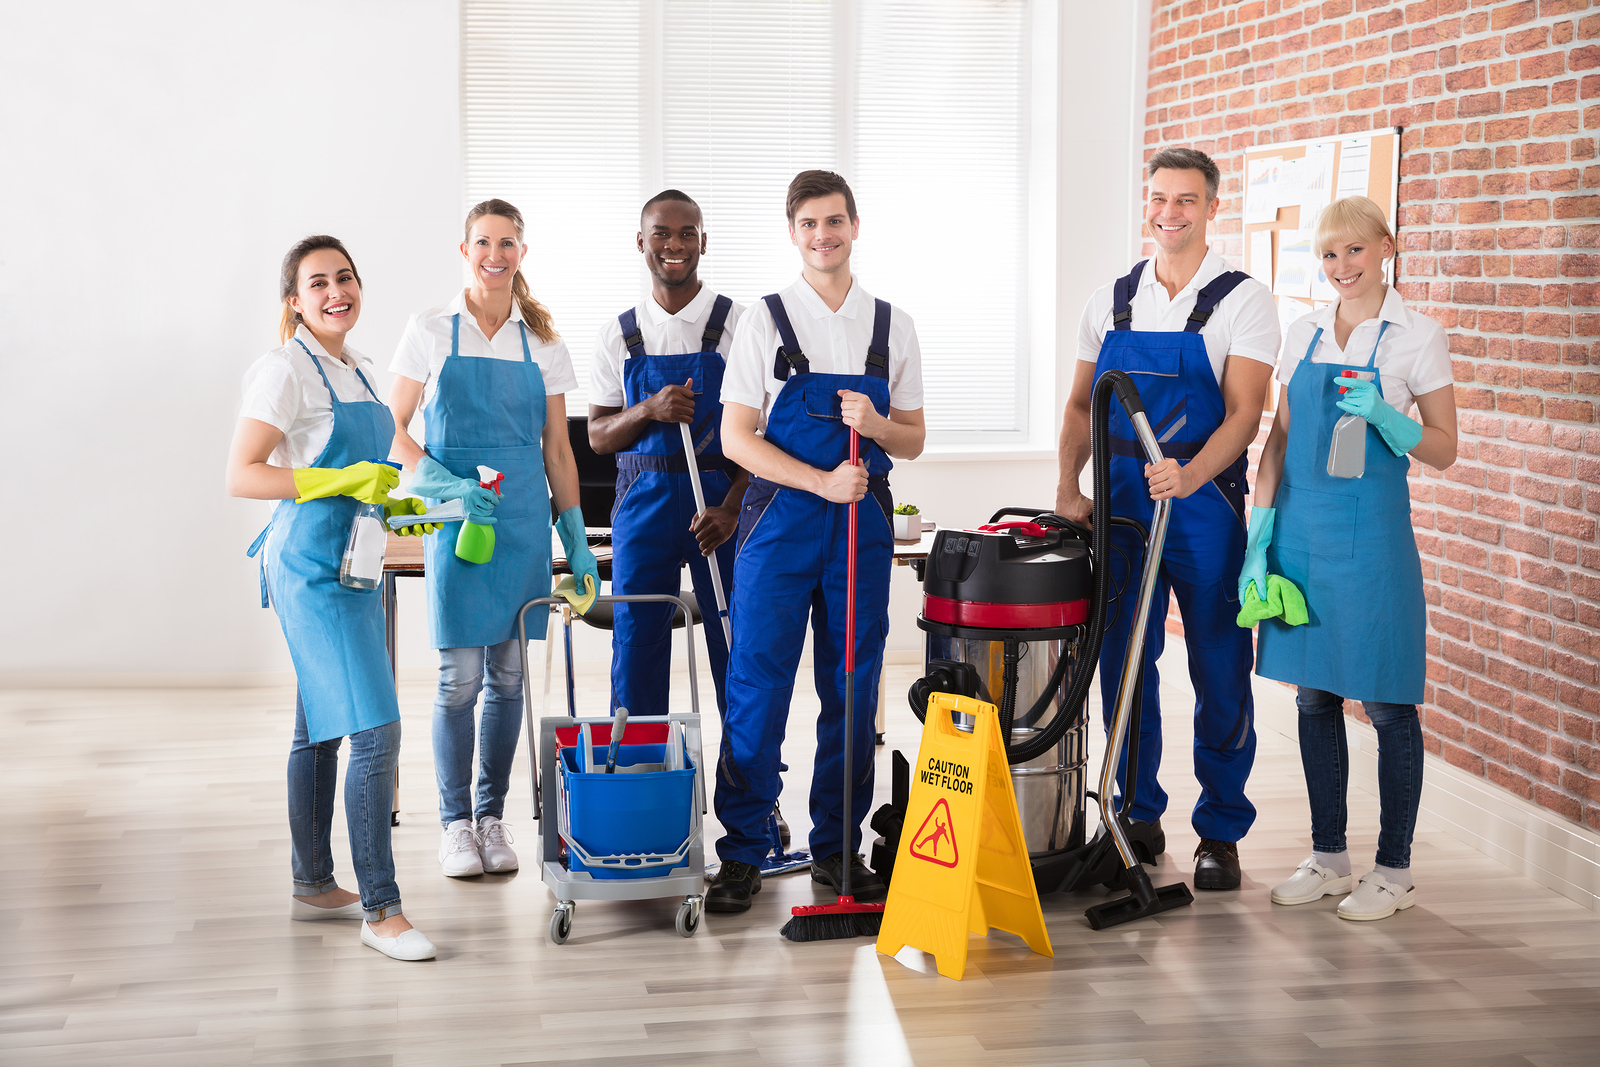 a group of professional cleaners